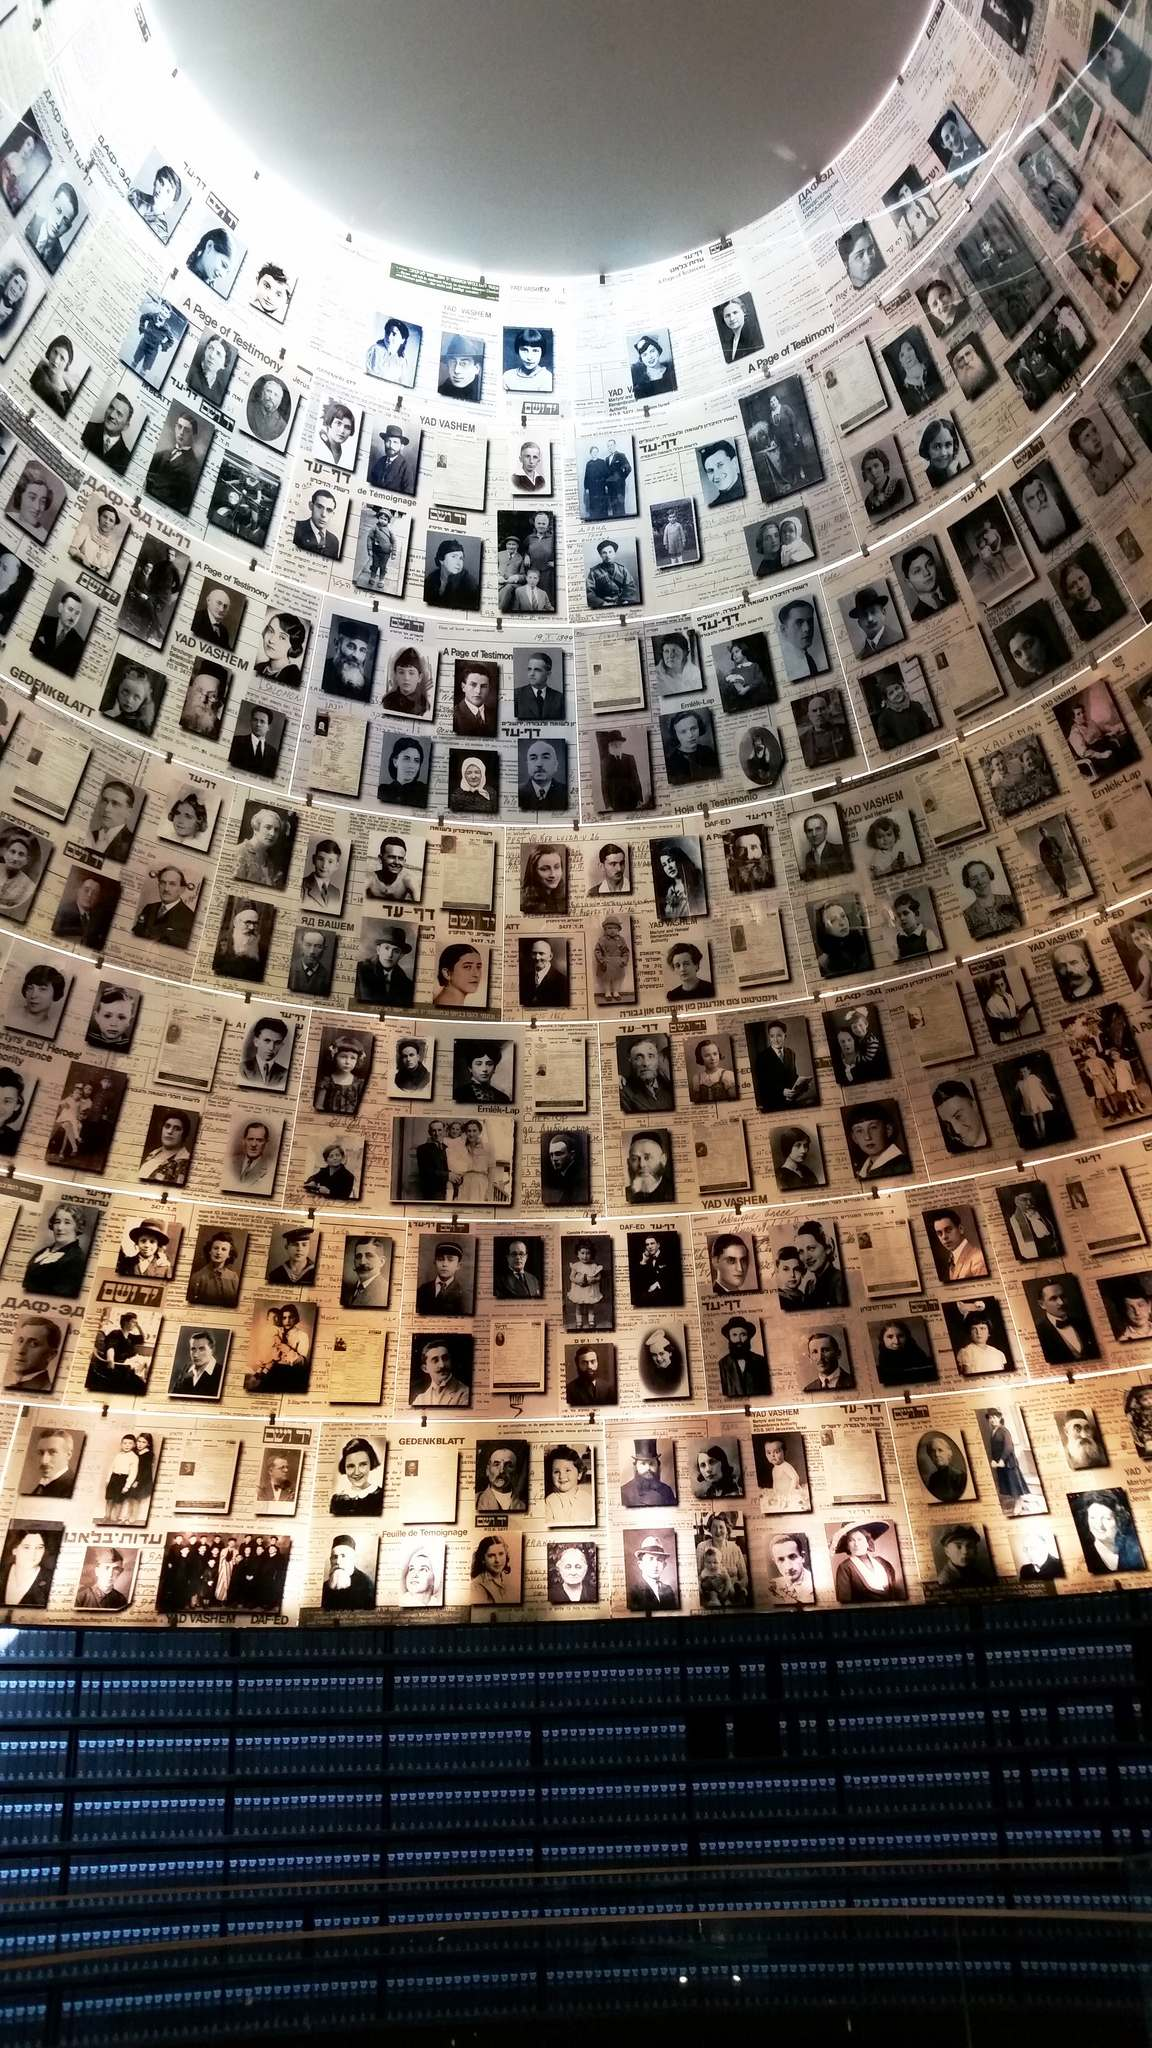 yad vashem1 The World Holocaust Remembrance Center, Israel